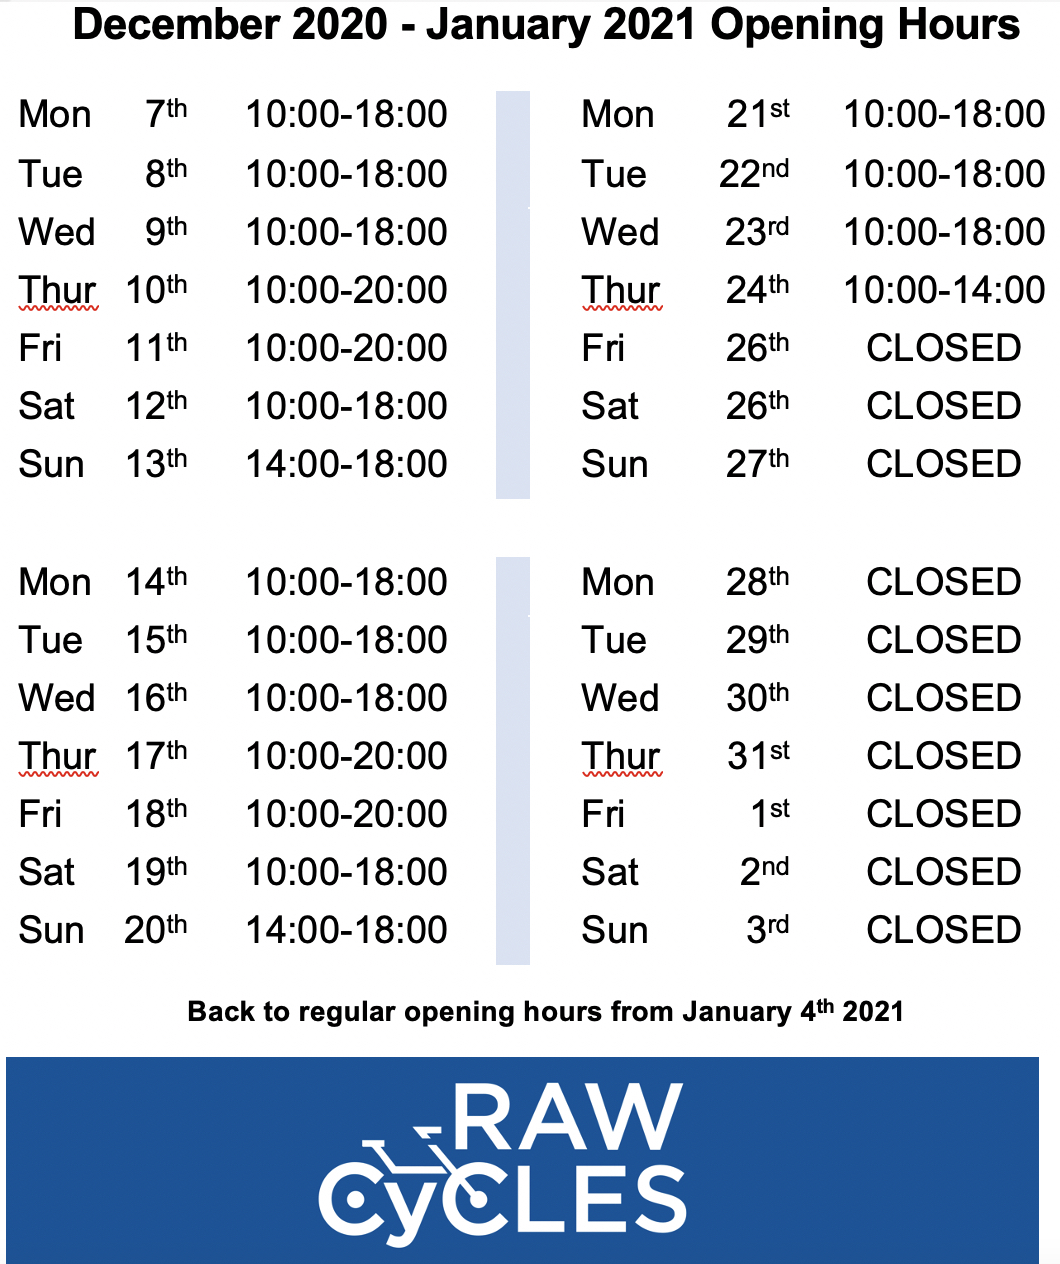 RAW Cycles Opening Hours